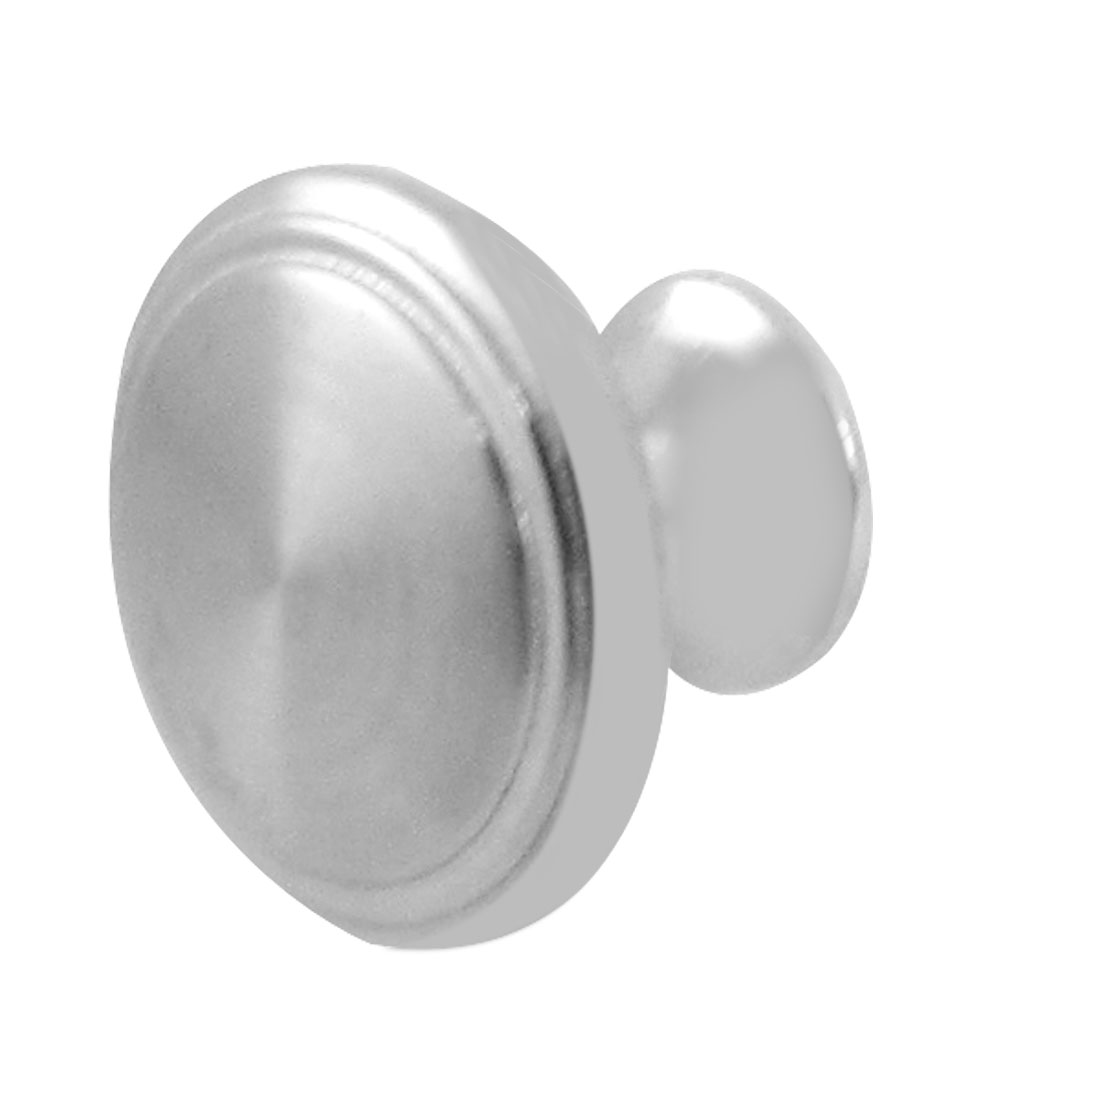 "Drawer Fitting 1.1"" Dia Pull Handle Metal Round Knob"